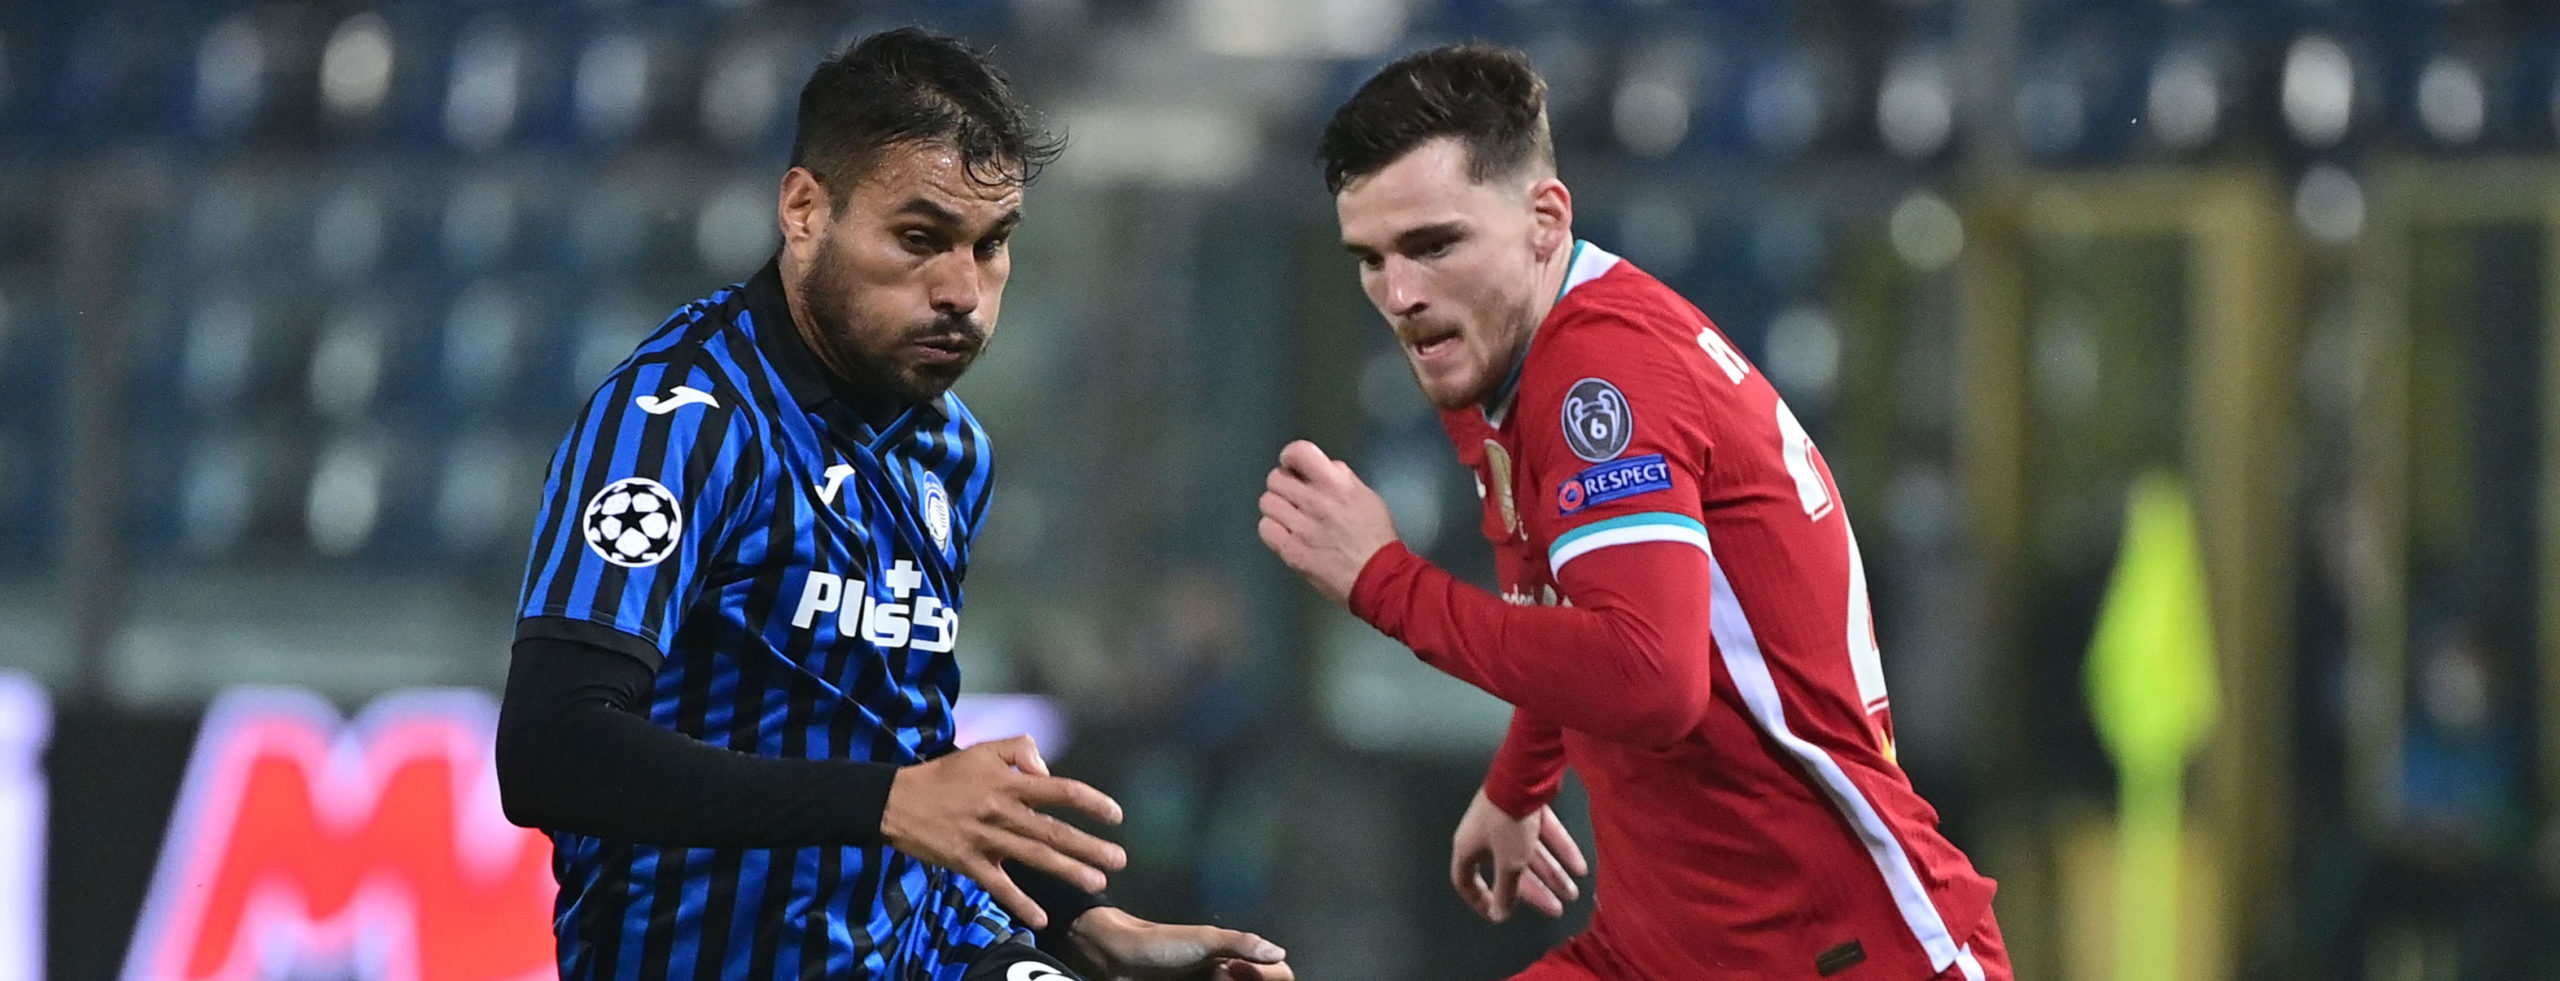 Liverpool vs Atalanta: Reds to overcome injuries